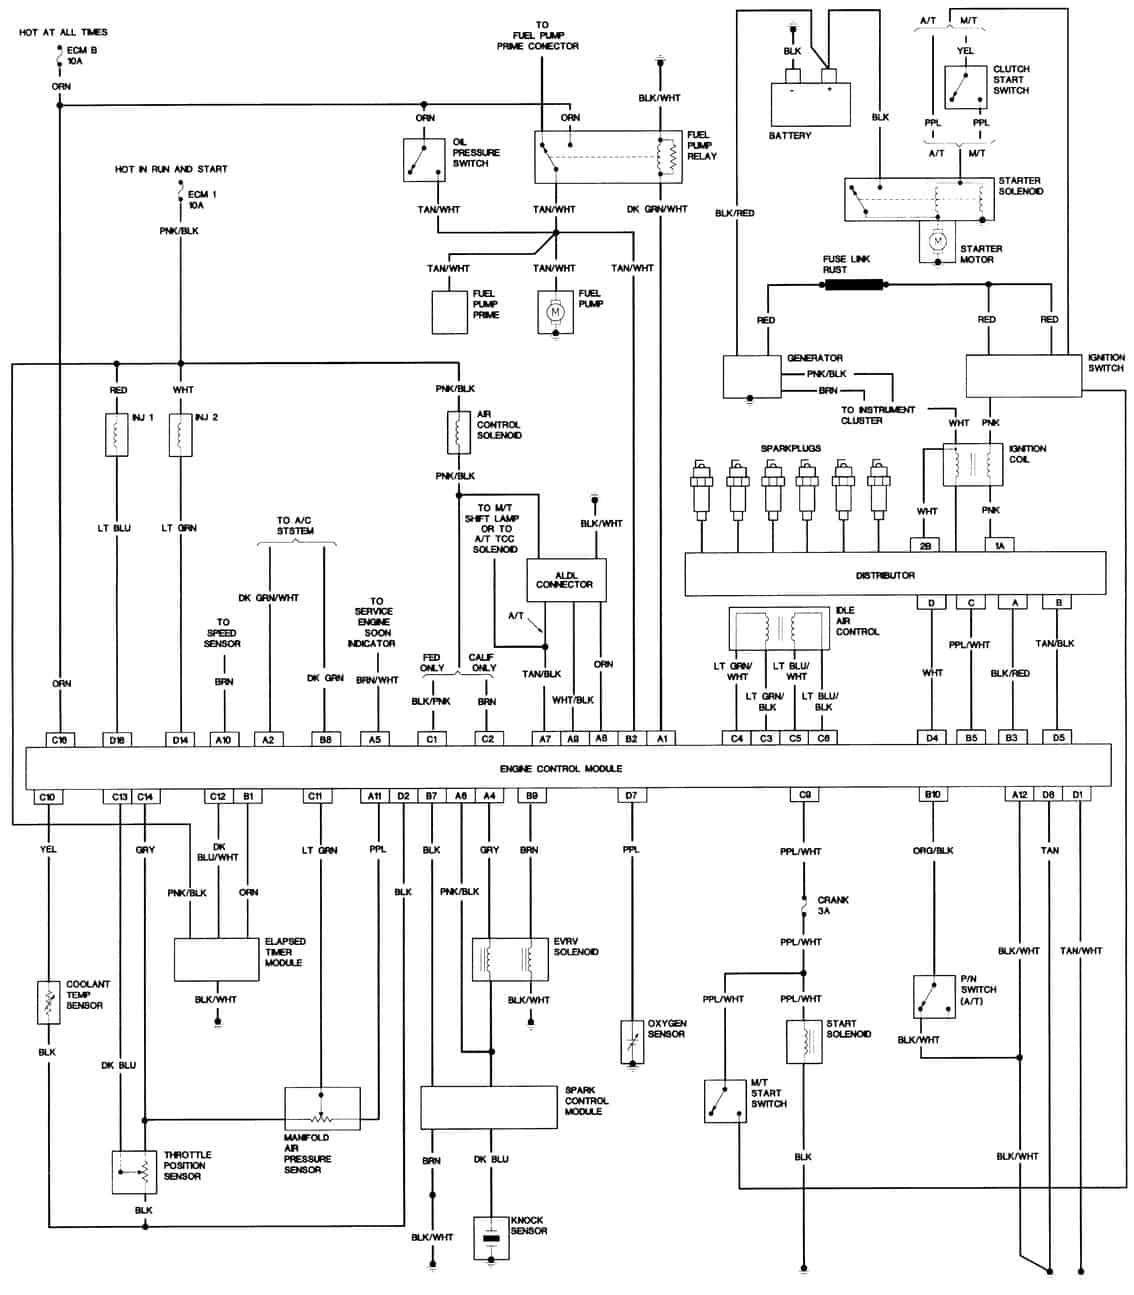 DIAGRAM] 85 S10 V6 Engine Wiring Diagrams FULL Version HD ... on headlight switch wiring diagram, 97 s10 ignition switch diagram, s10 electrical diagram, 88 s10 engine, 88 s10 air cleaner, 88 s10 suspension, chevrolet s10 engine diagram, 88 s10 fuel gauge, 88 s10 frame, 88 s10 seats, 88 s10 parts, 88 s10 radiator, 88 s10 wheels, 88 s10 air conditioning,